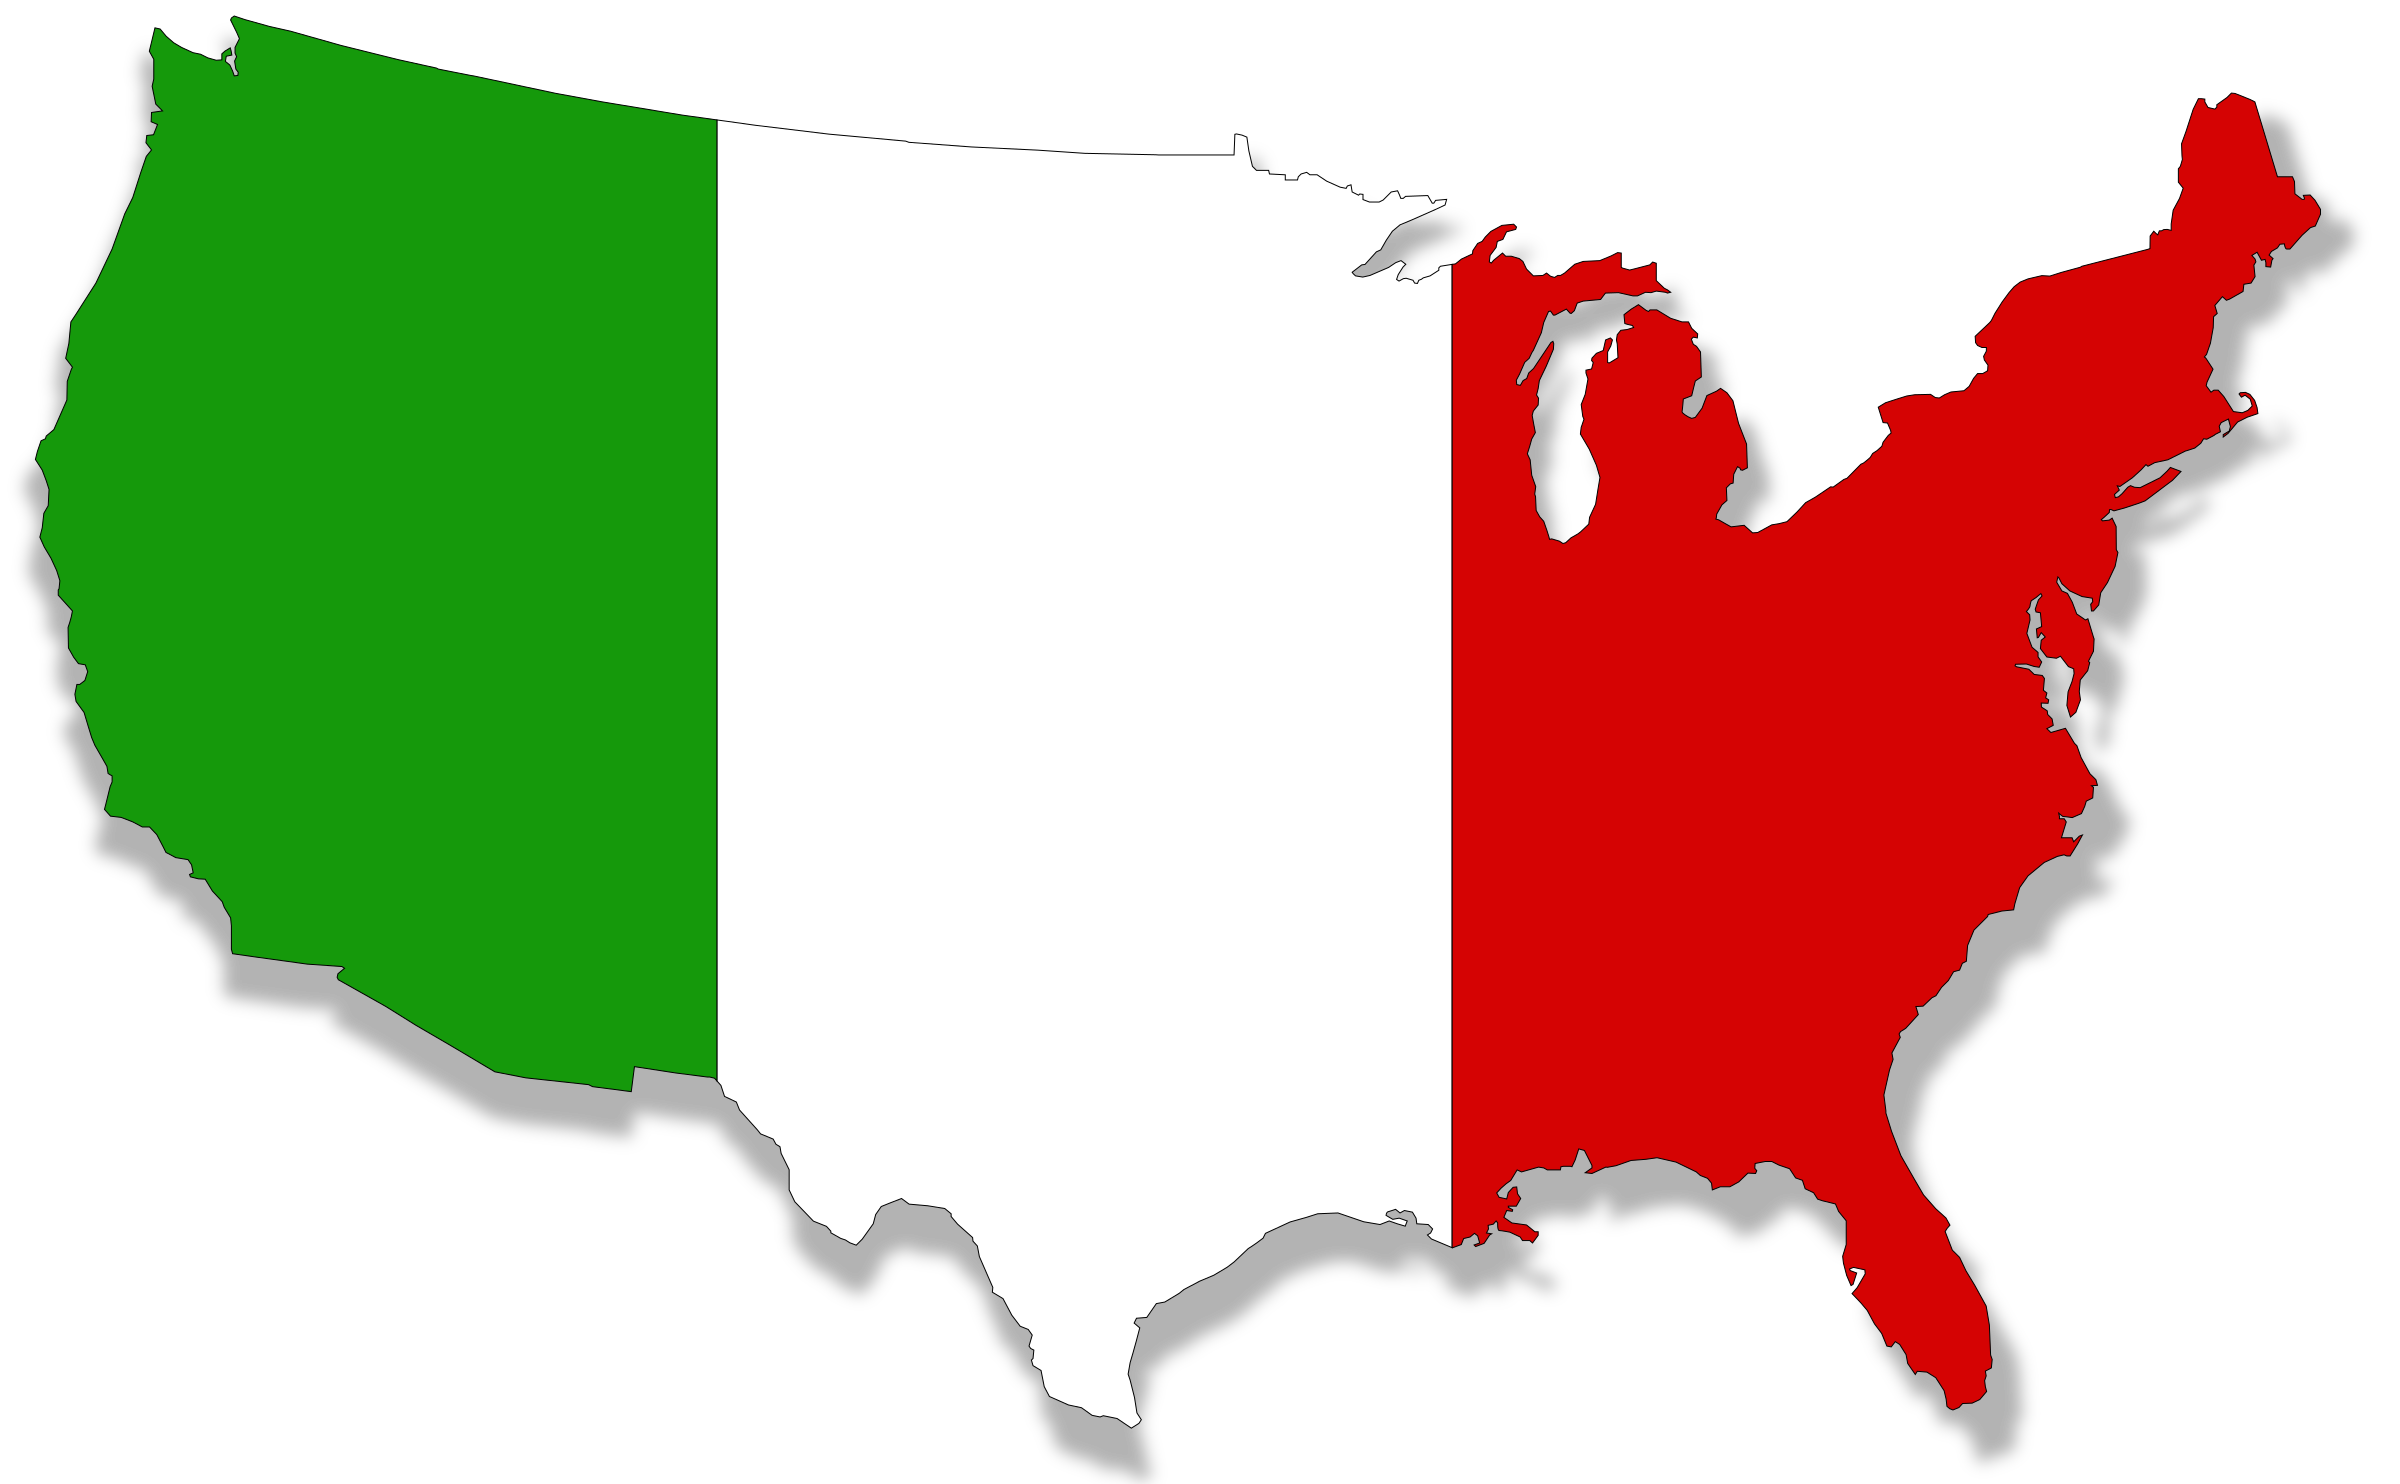 Clipart u s map banner freeuse download United States Silhouette Clip art - italy 2400*1484 transprent Png ... banner freeuse download